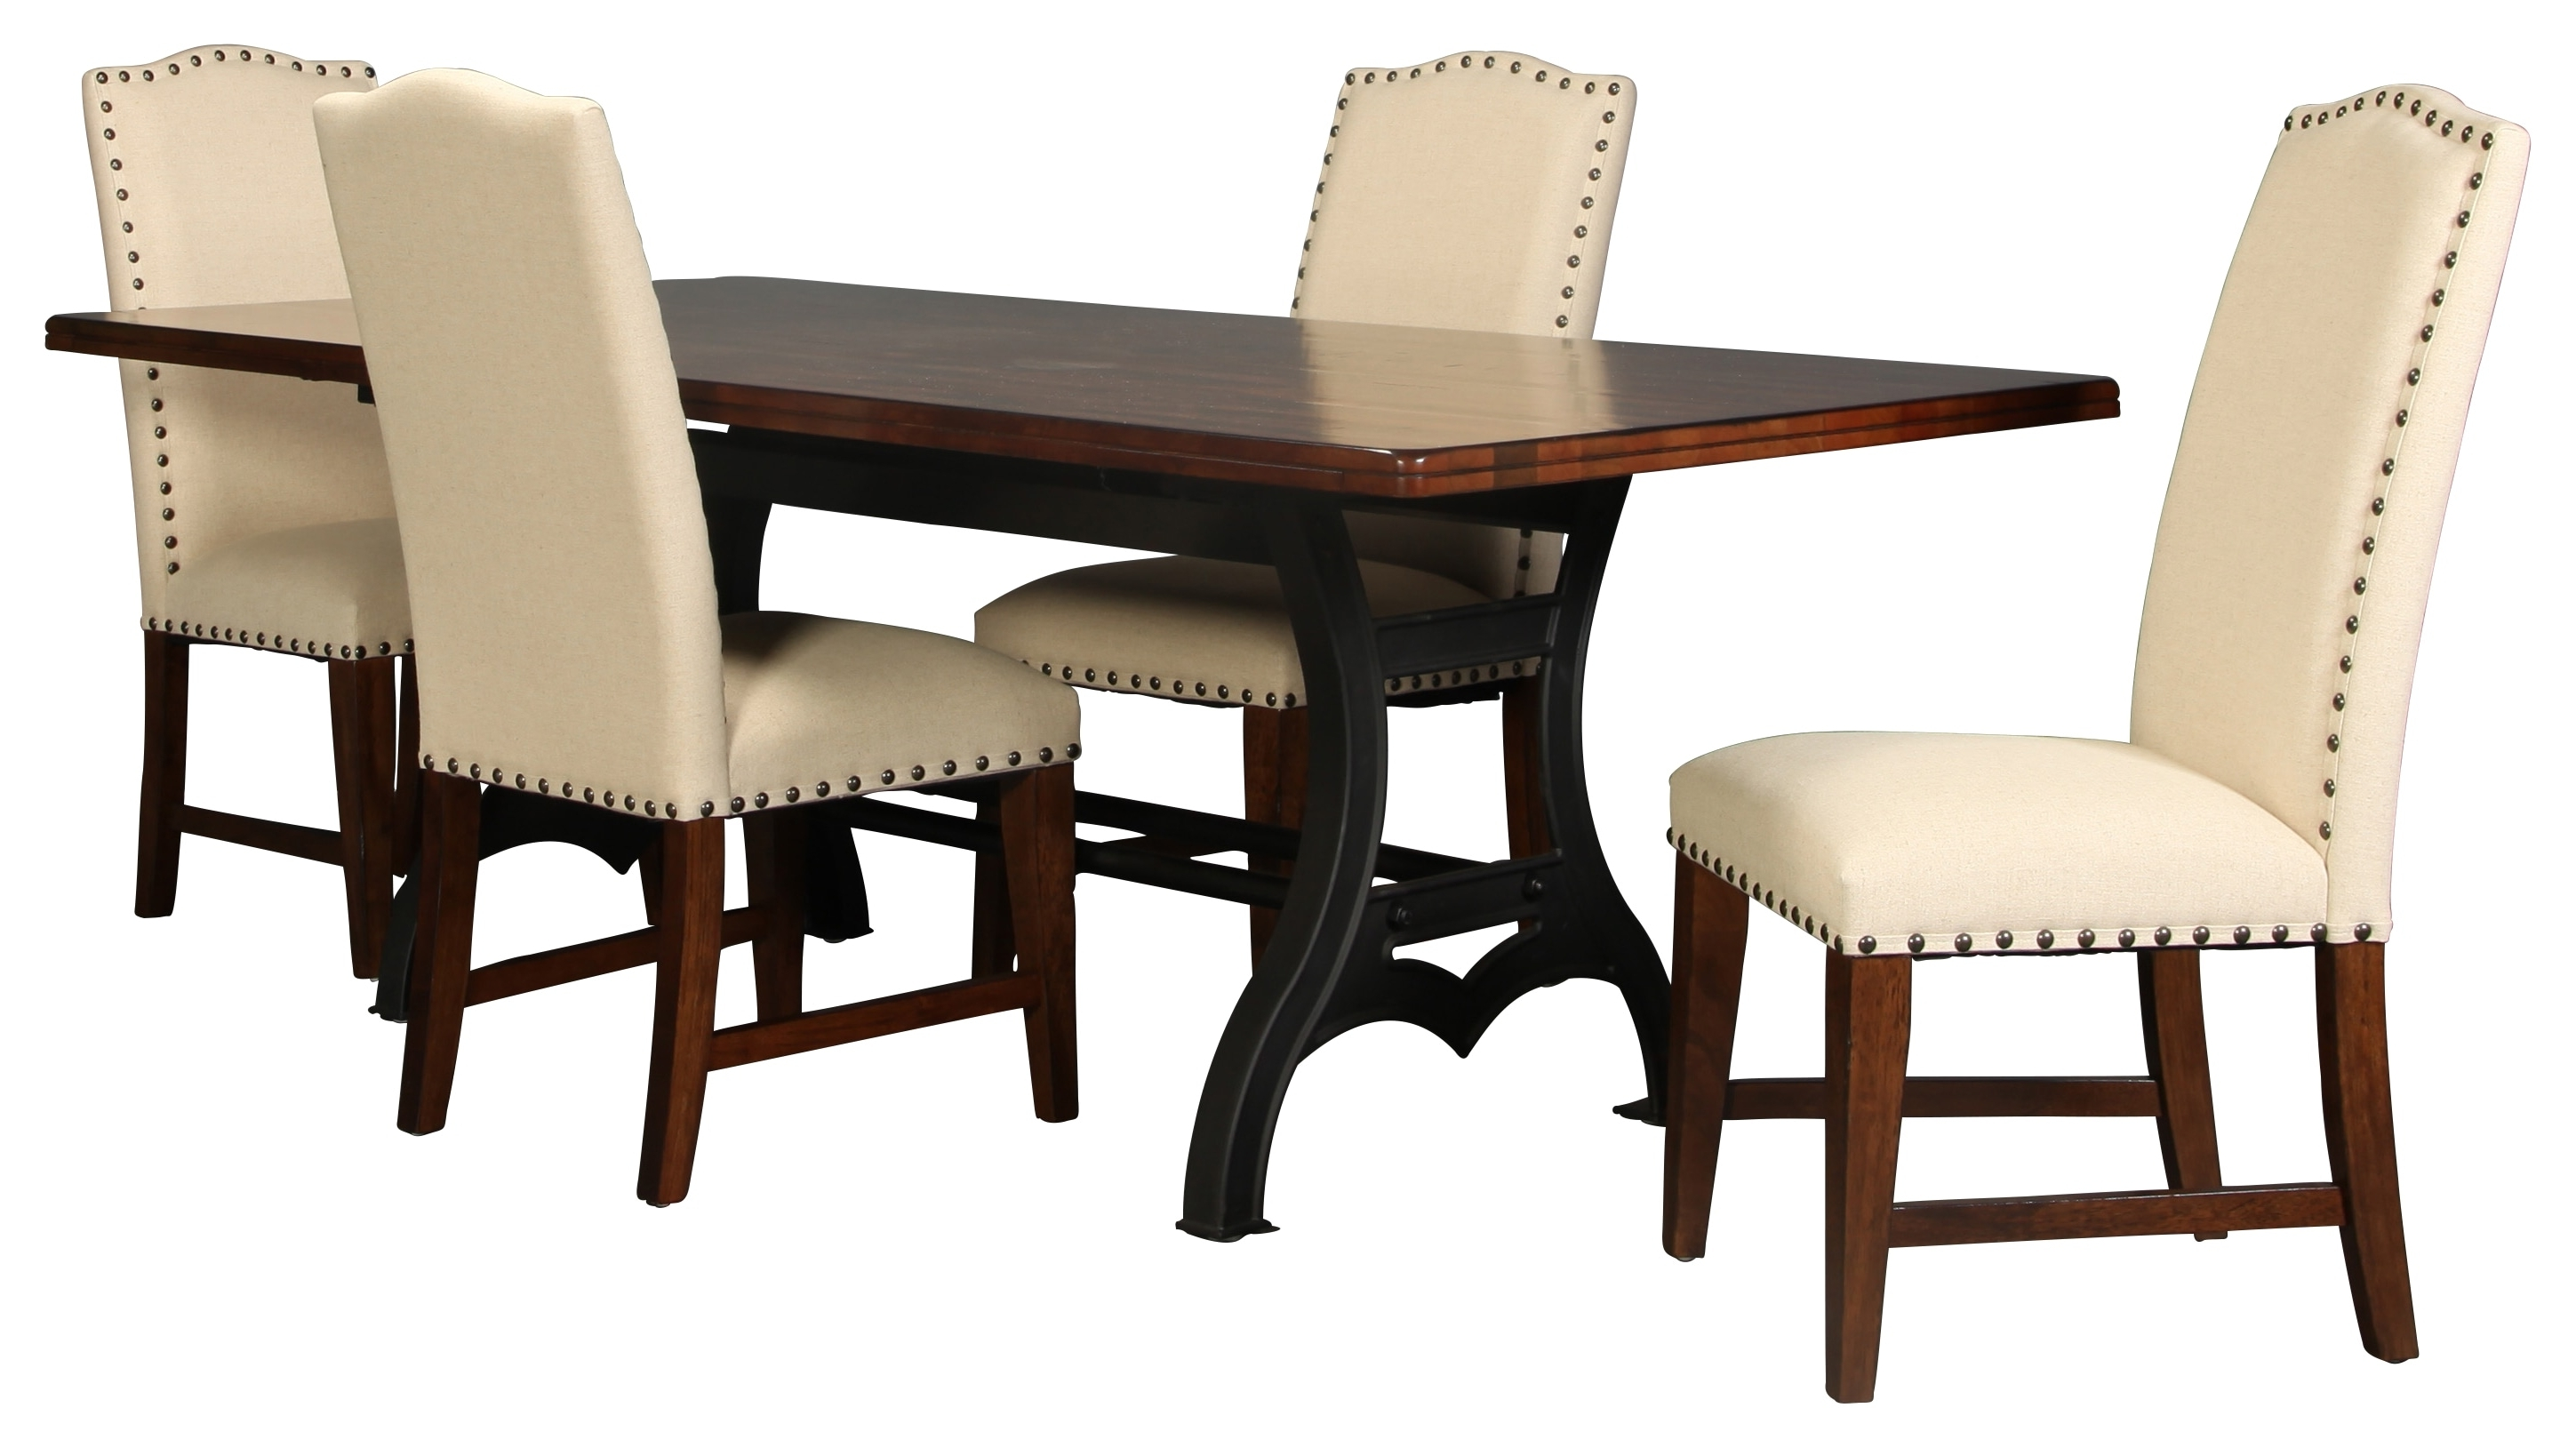 Nora Dining Tables Intended For Preferred Nora Dining Table (Gallery 11 of 25)